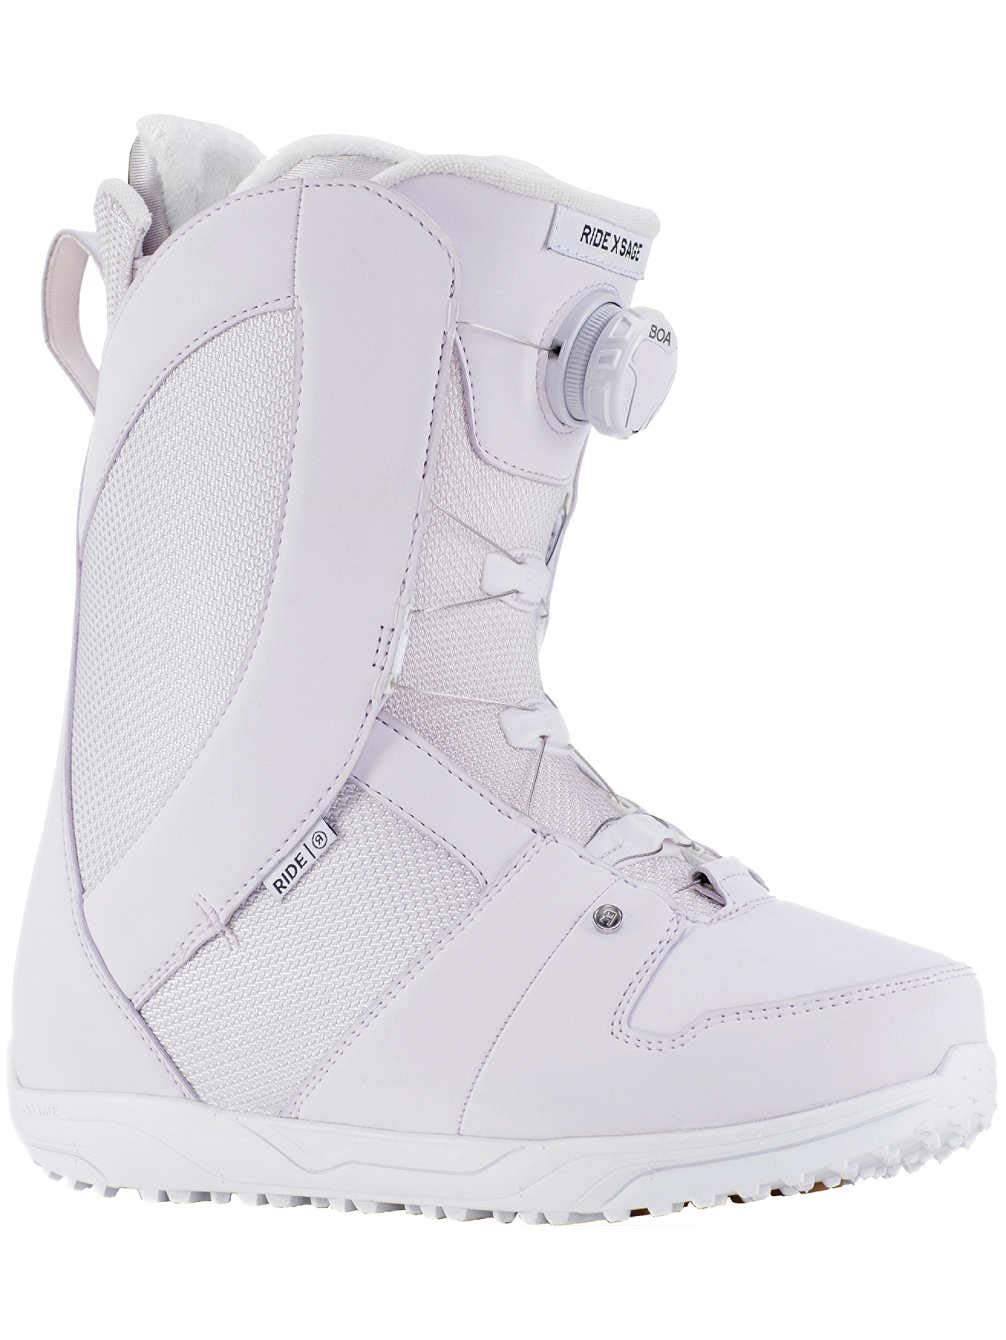 Ride Sage 2019 Snowboard Boot - Women's Lilac 10 by Ride